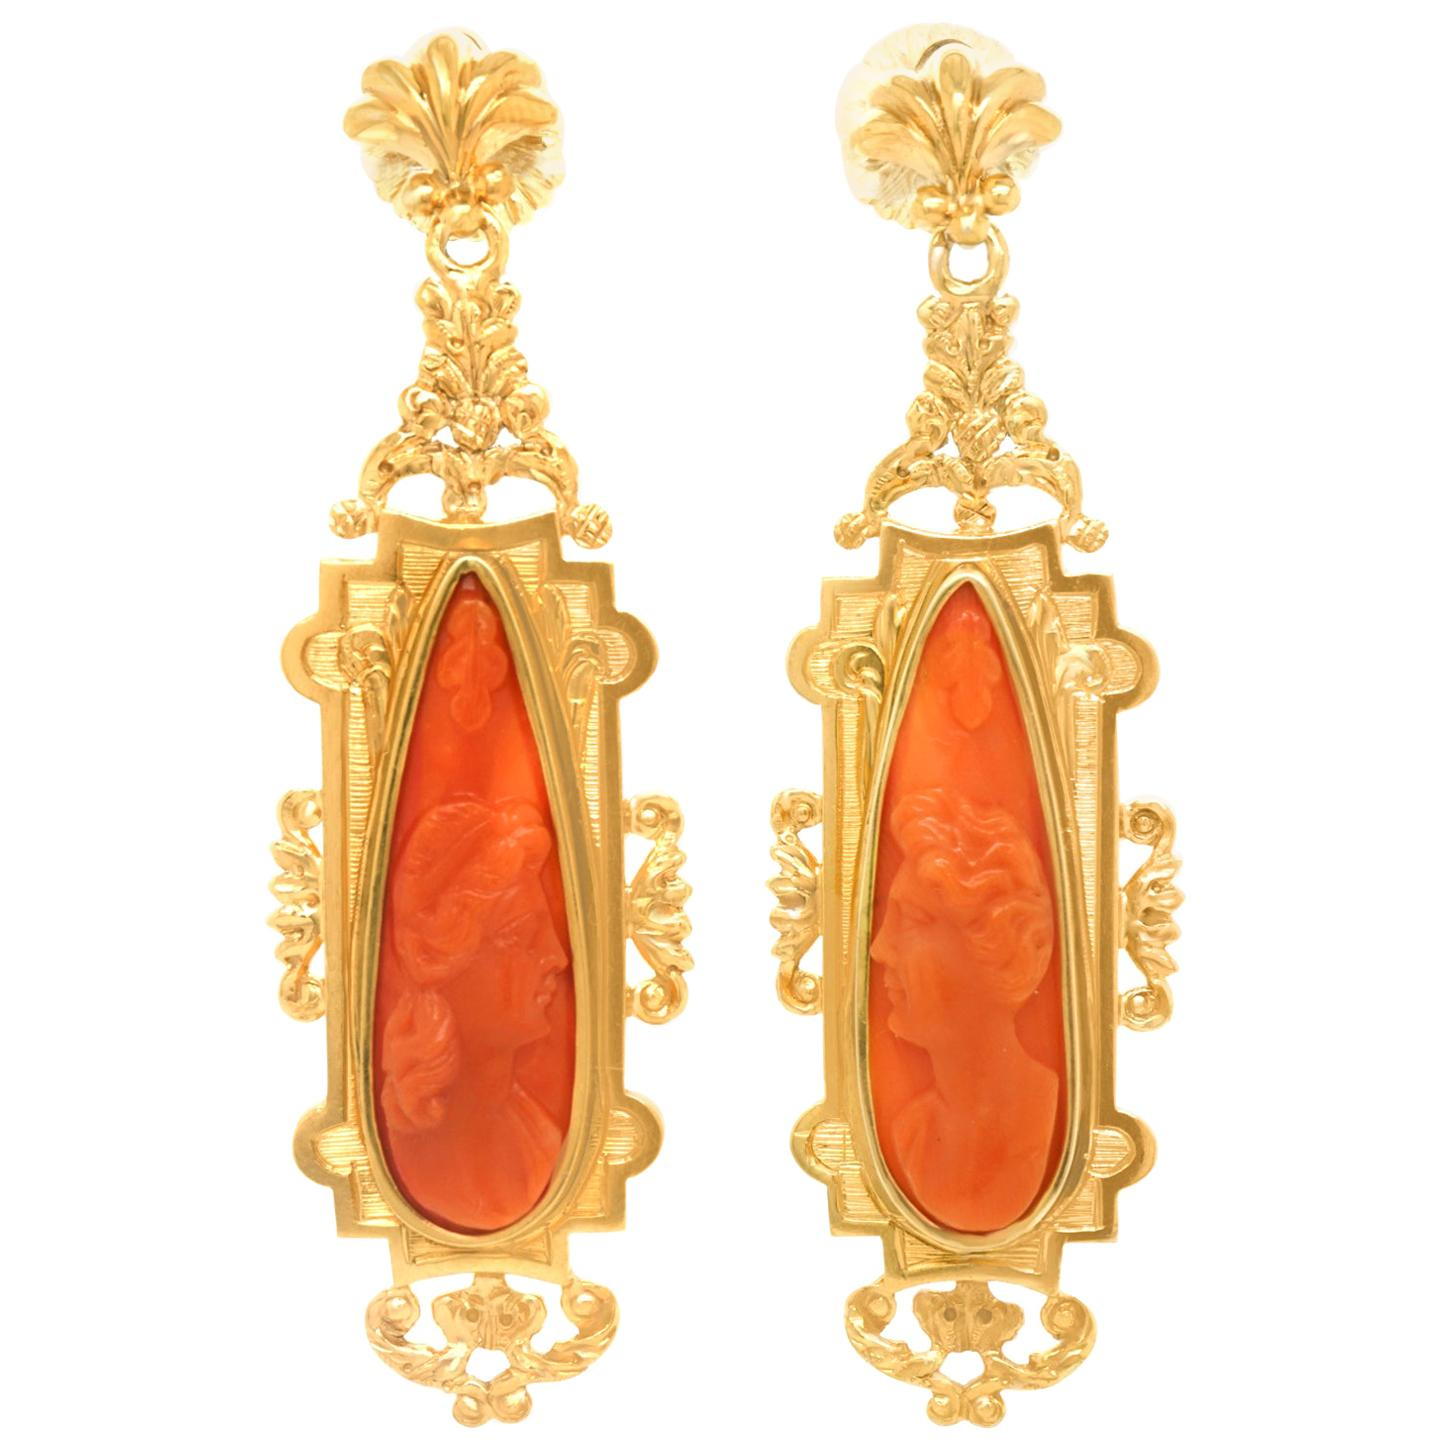 Antique Baroque Revival Coral Cameo Chandelier Earrings